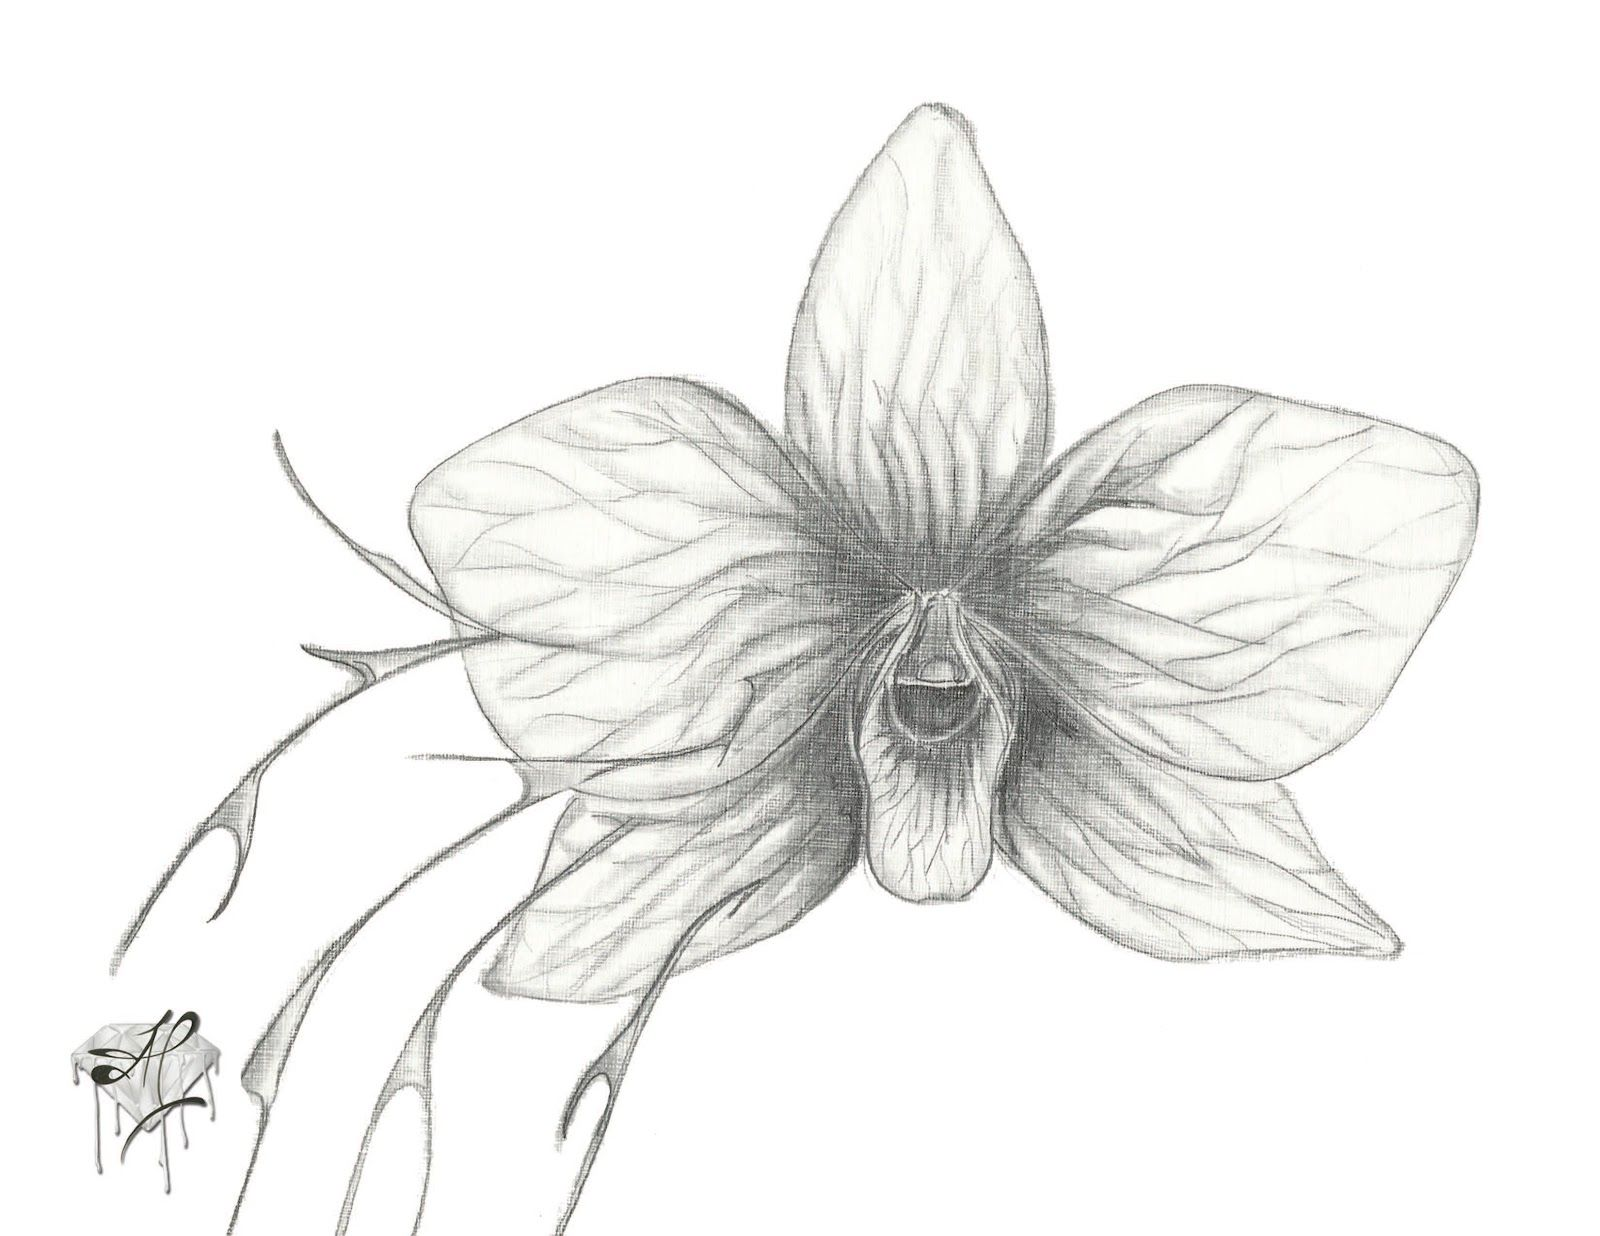 Pin by Rita Spess on Draw flowers | Pinterest | Orchids ...  Pin by Rita Spe...